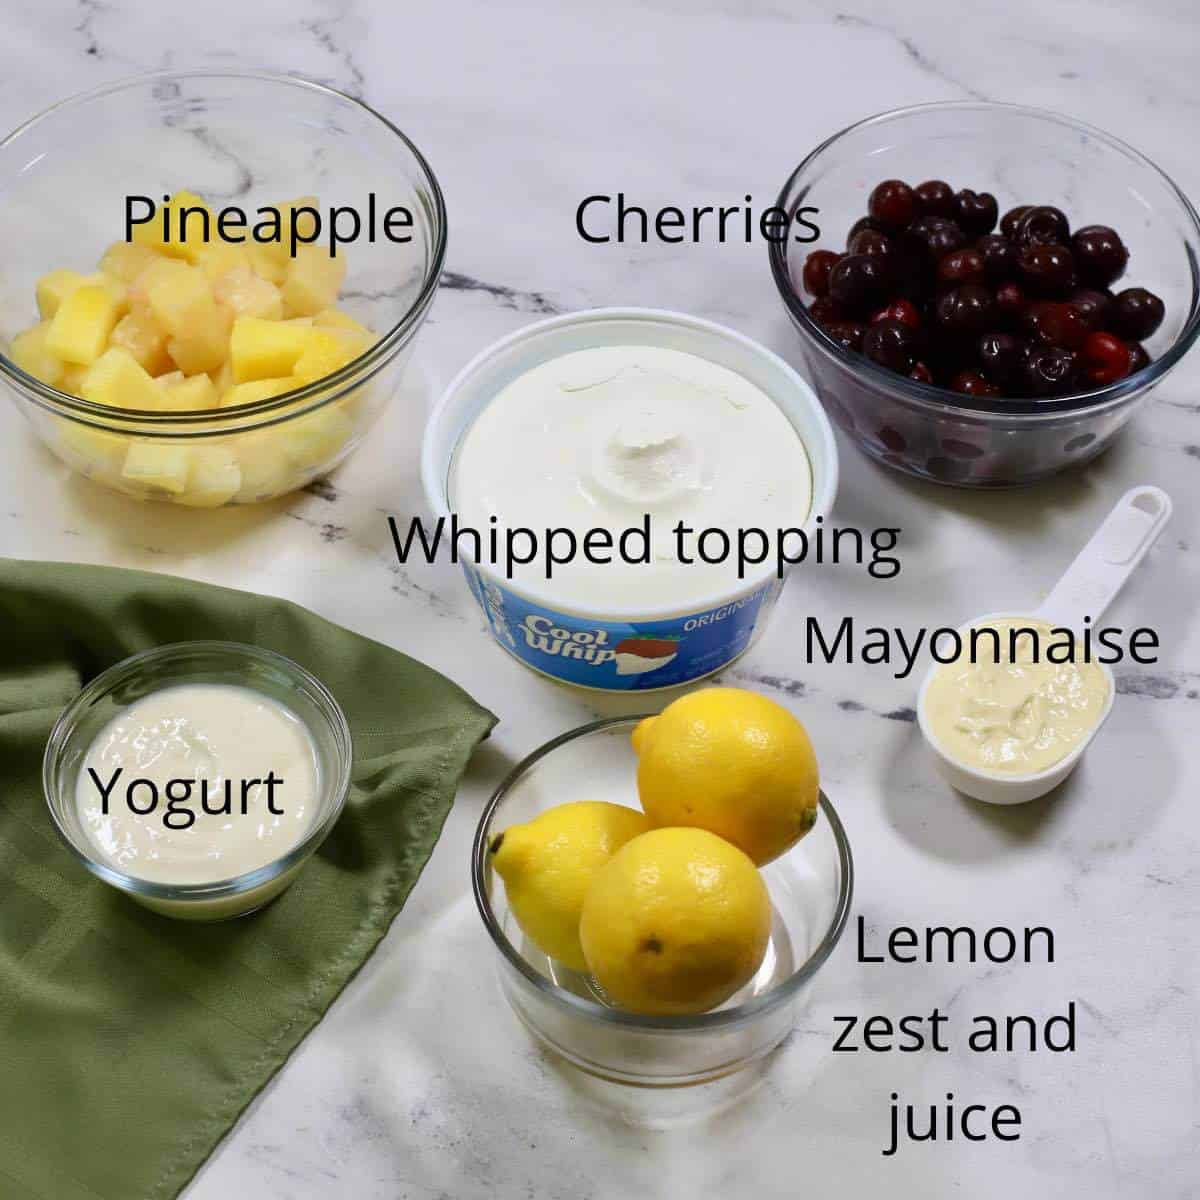 Ingredients for a frozen fruit salad including cherries and pineapple.